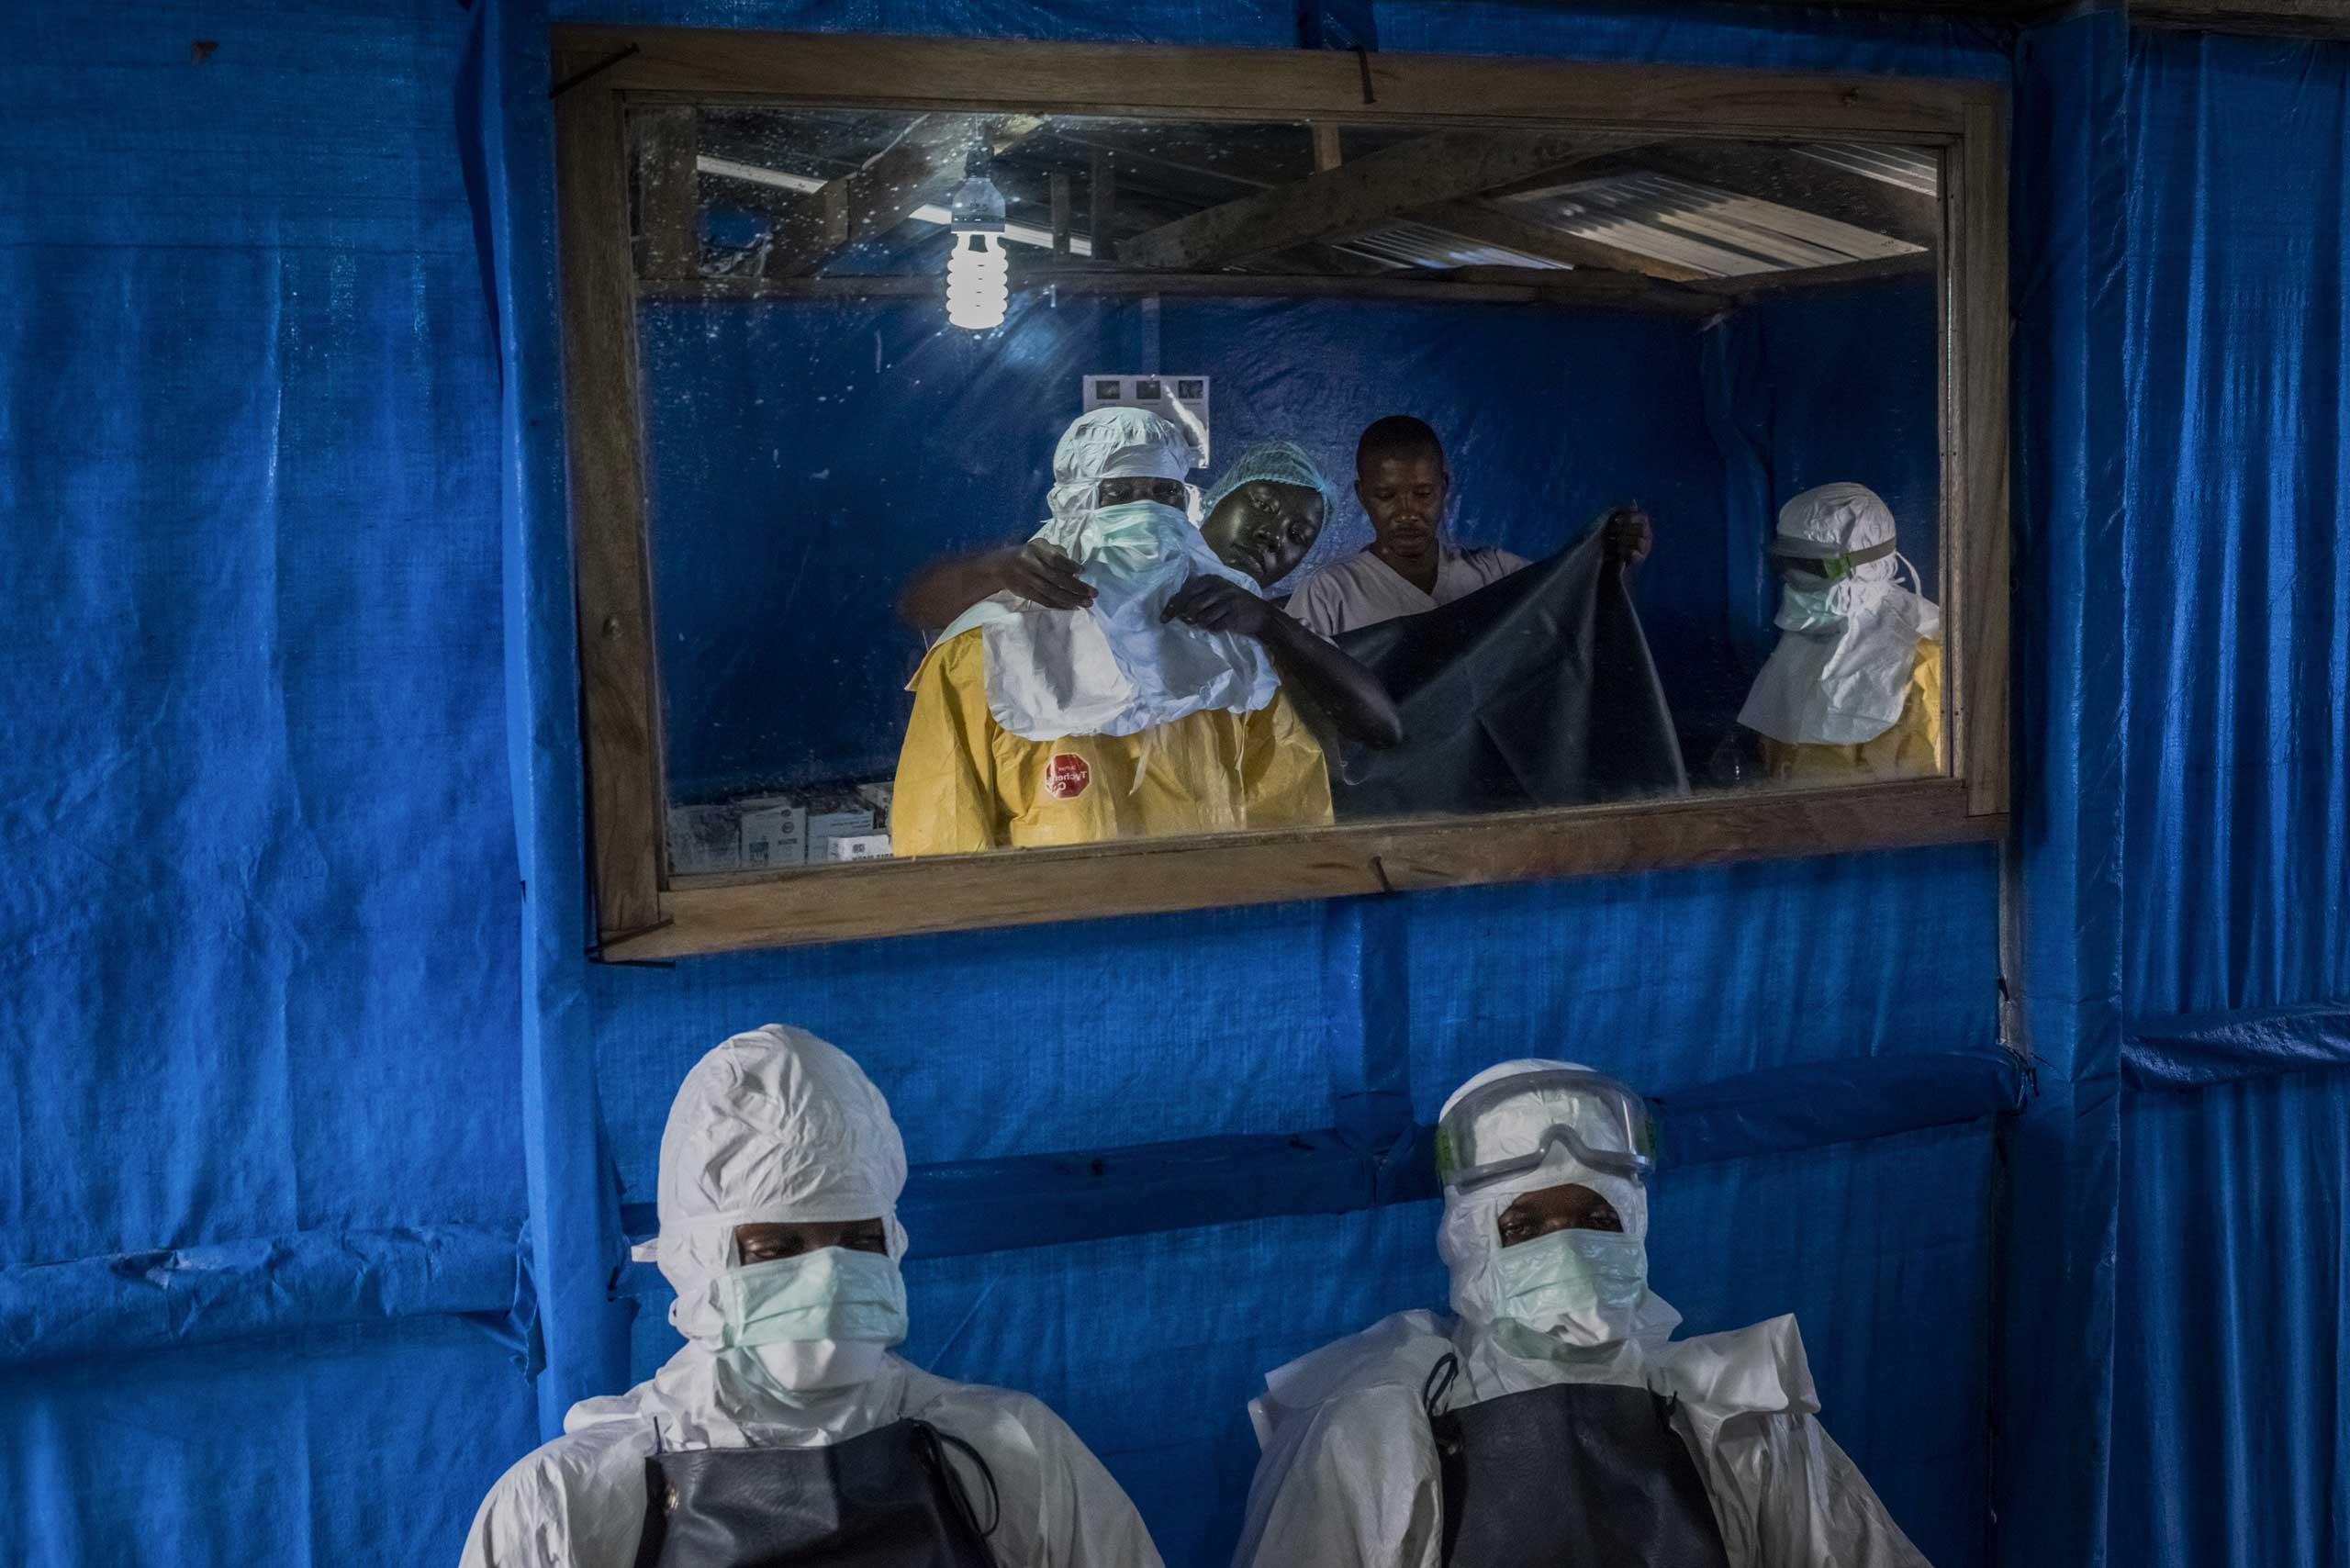 Health workers receive assistance with putting on their protective gear before entering the high-risk zone at the Bong County Ebola Treatment Unit near Gbarnga in rural Bong County, Liberia, Oct. 5, 2014.